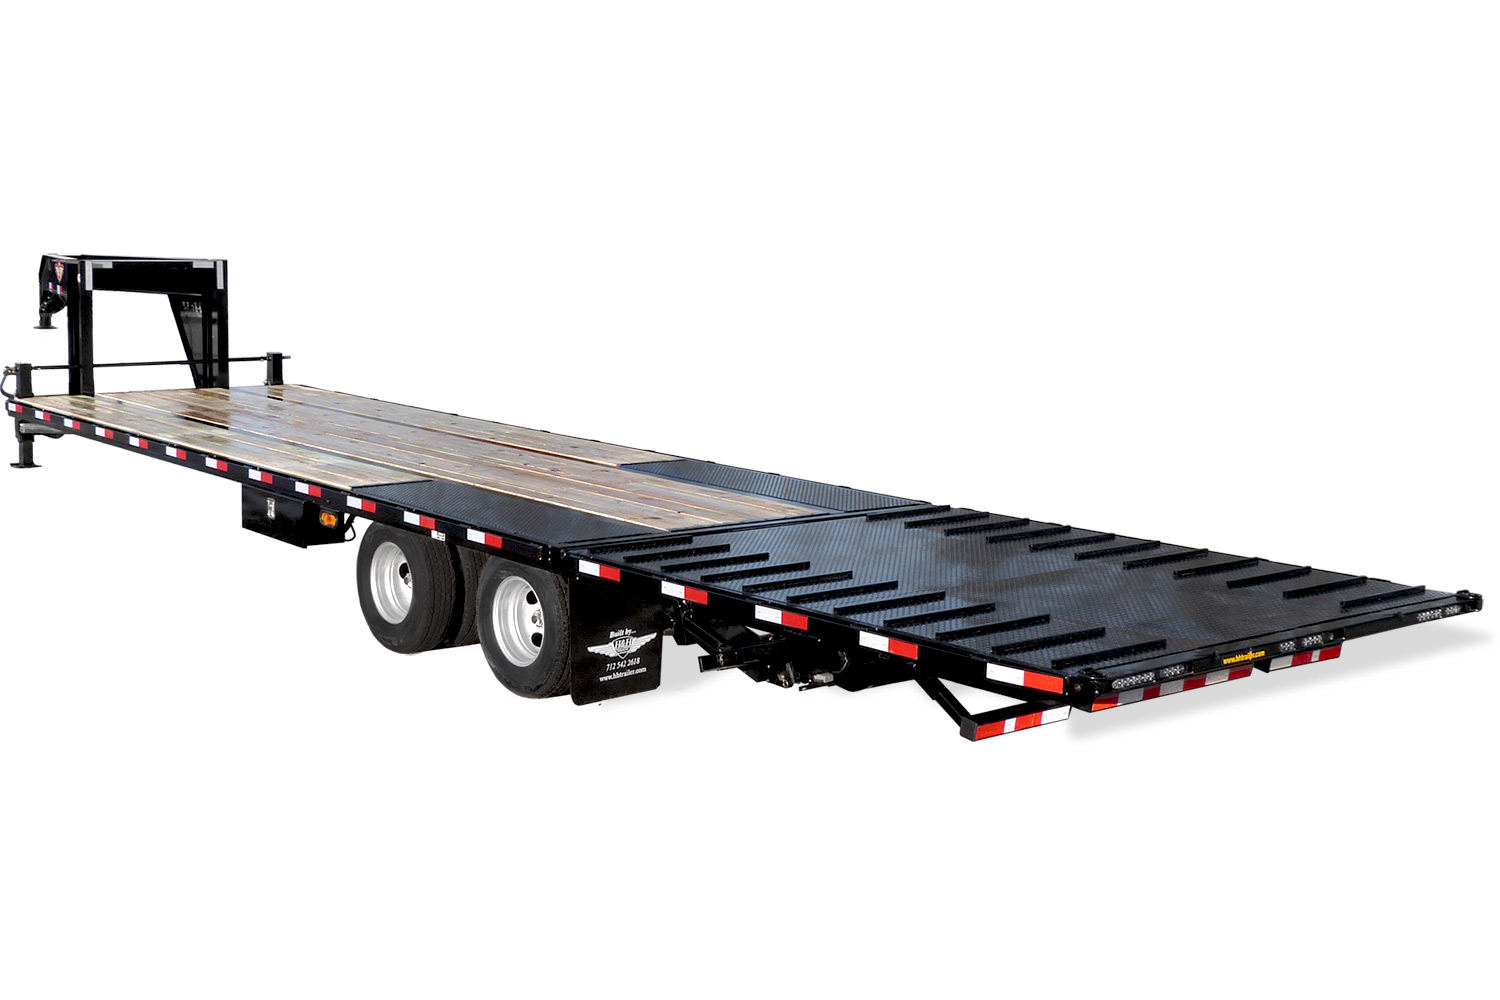 2020 H and H Trailer 25+5 19LB 20K GNLP DECKOVER SUPER DLX